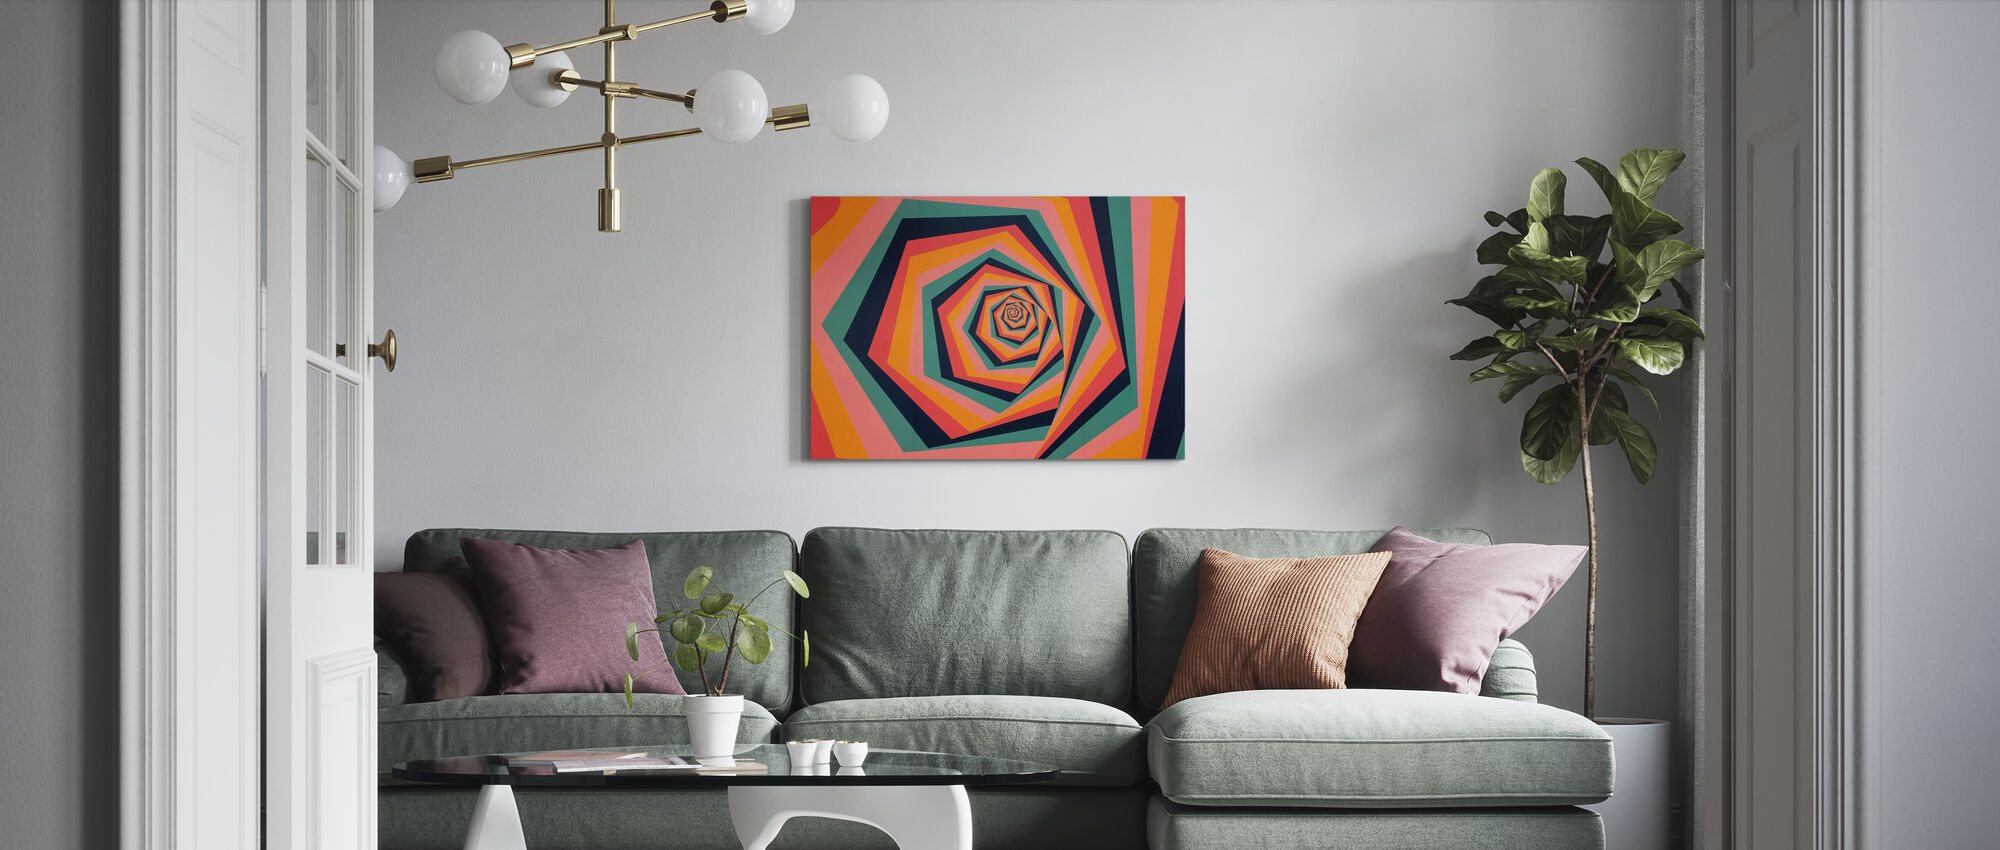 Abstract Patterns - Canvas print - Living Room